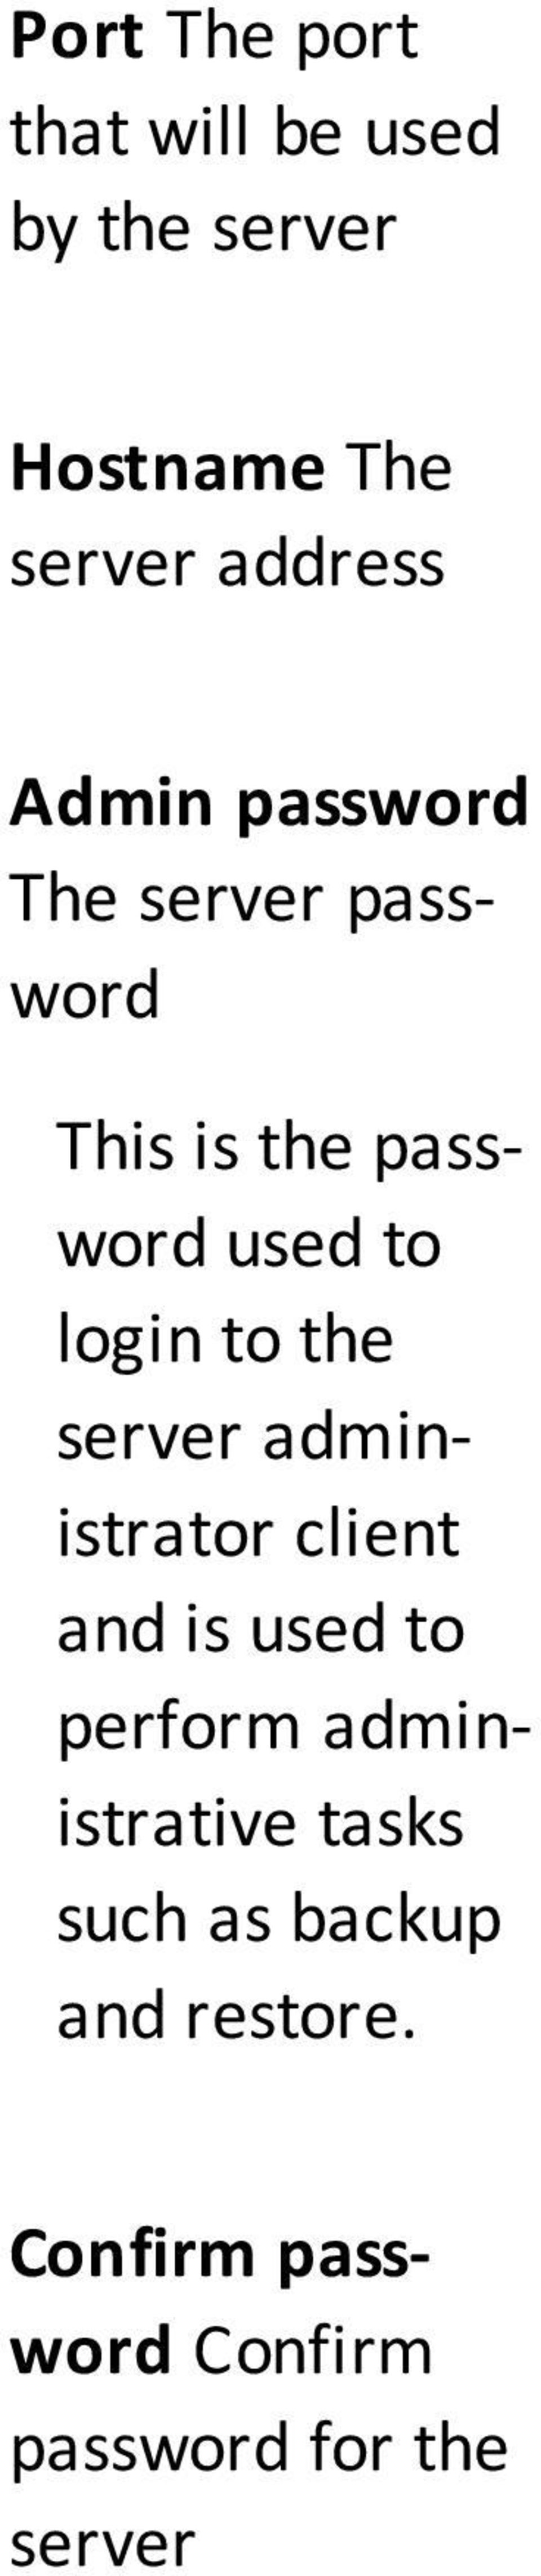 the server administrator client and is used to perform administrative